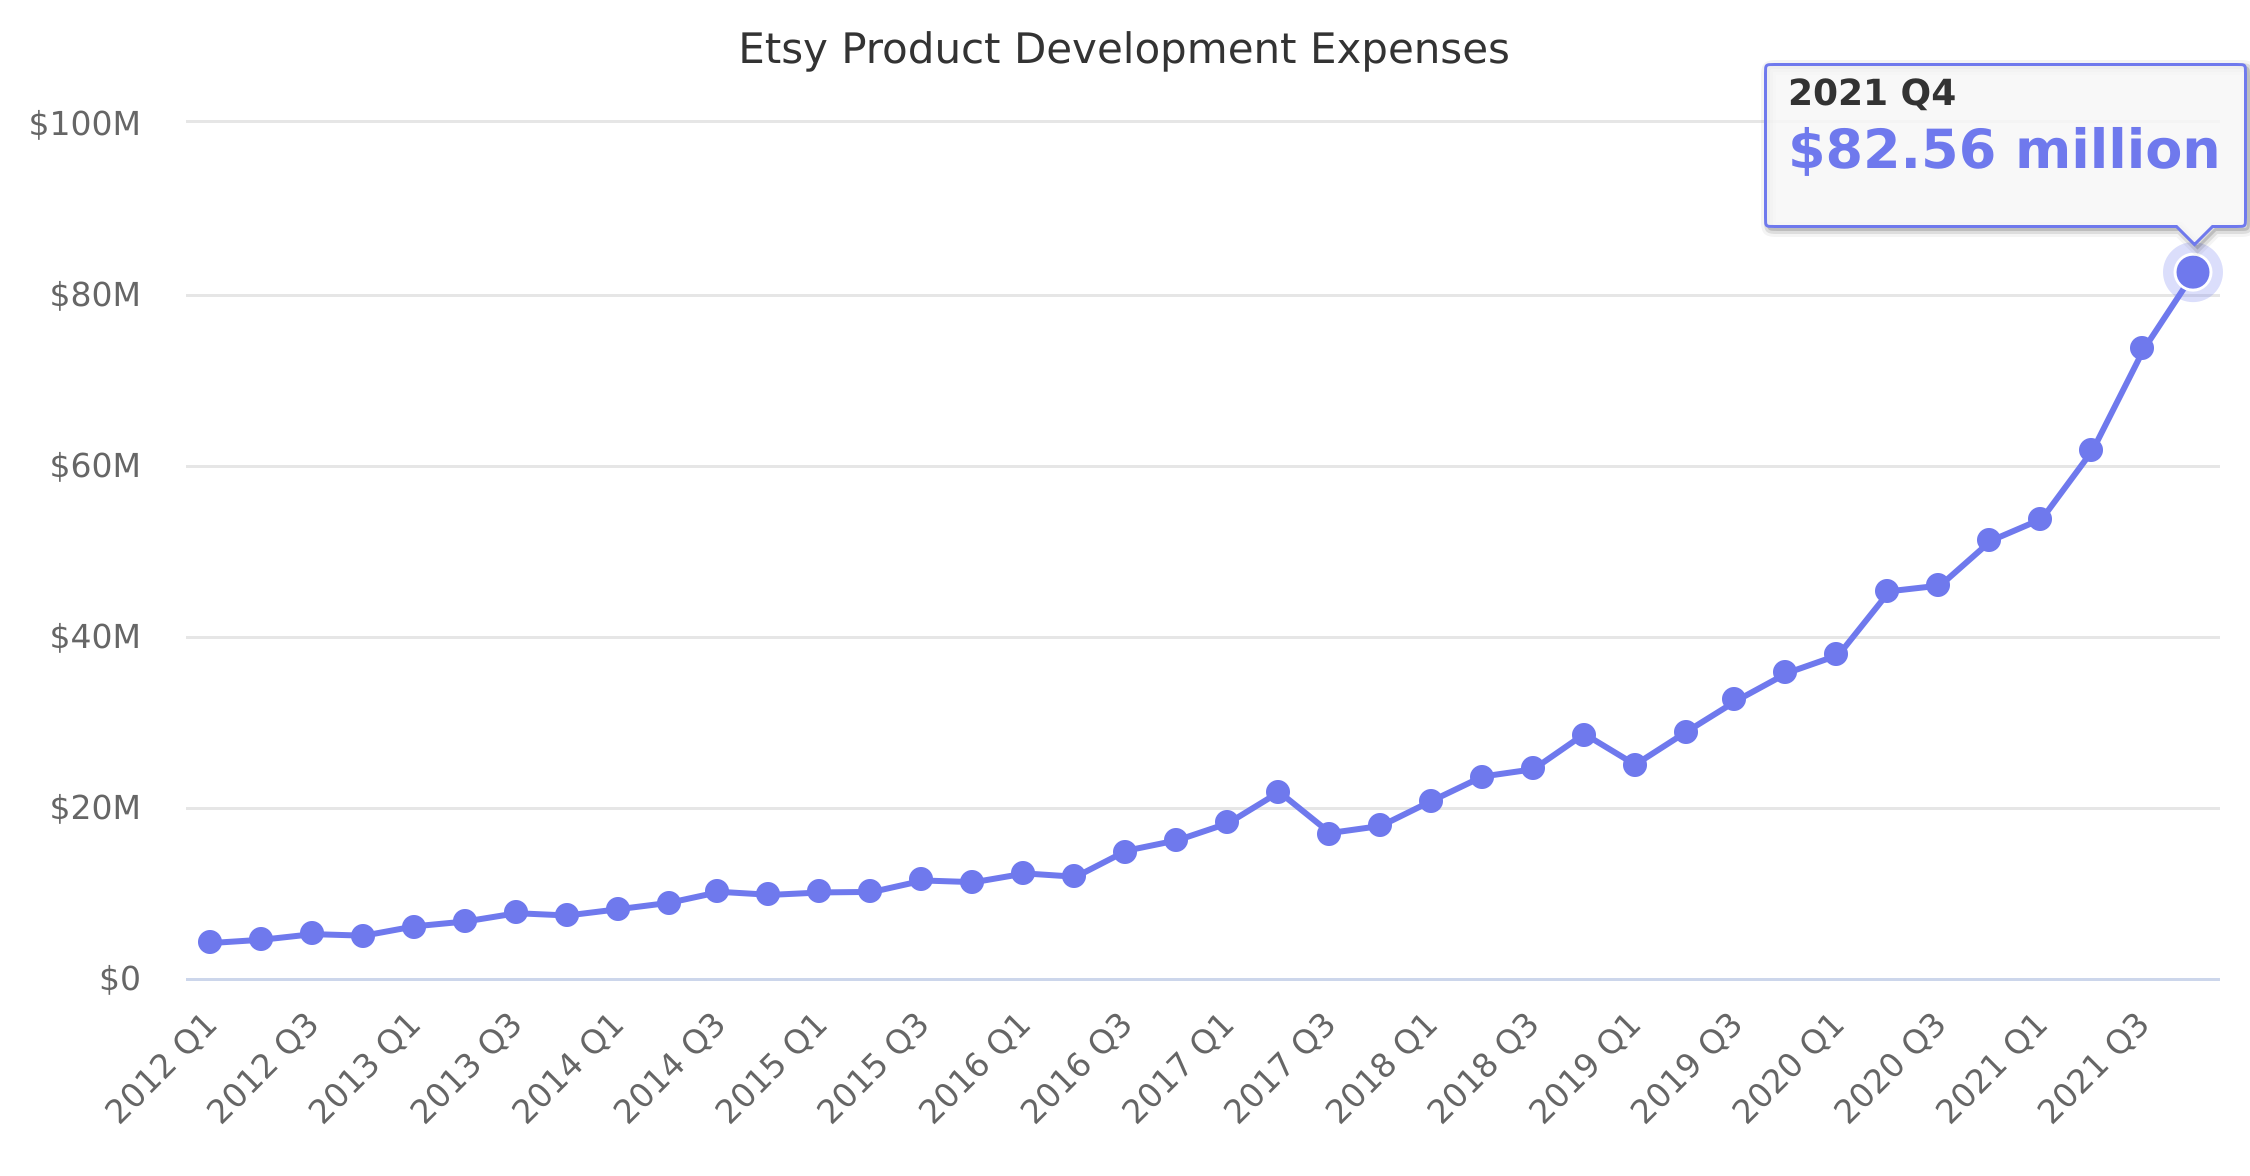 Etsy Product Development Expenses 2012-2019